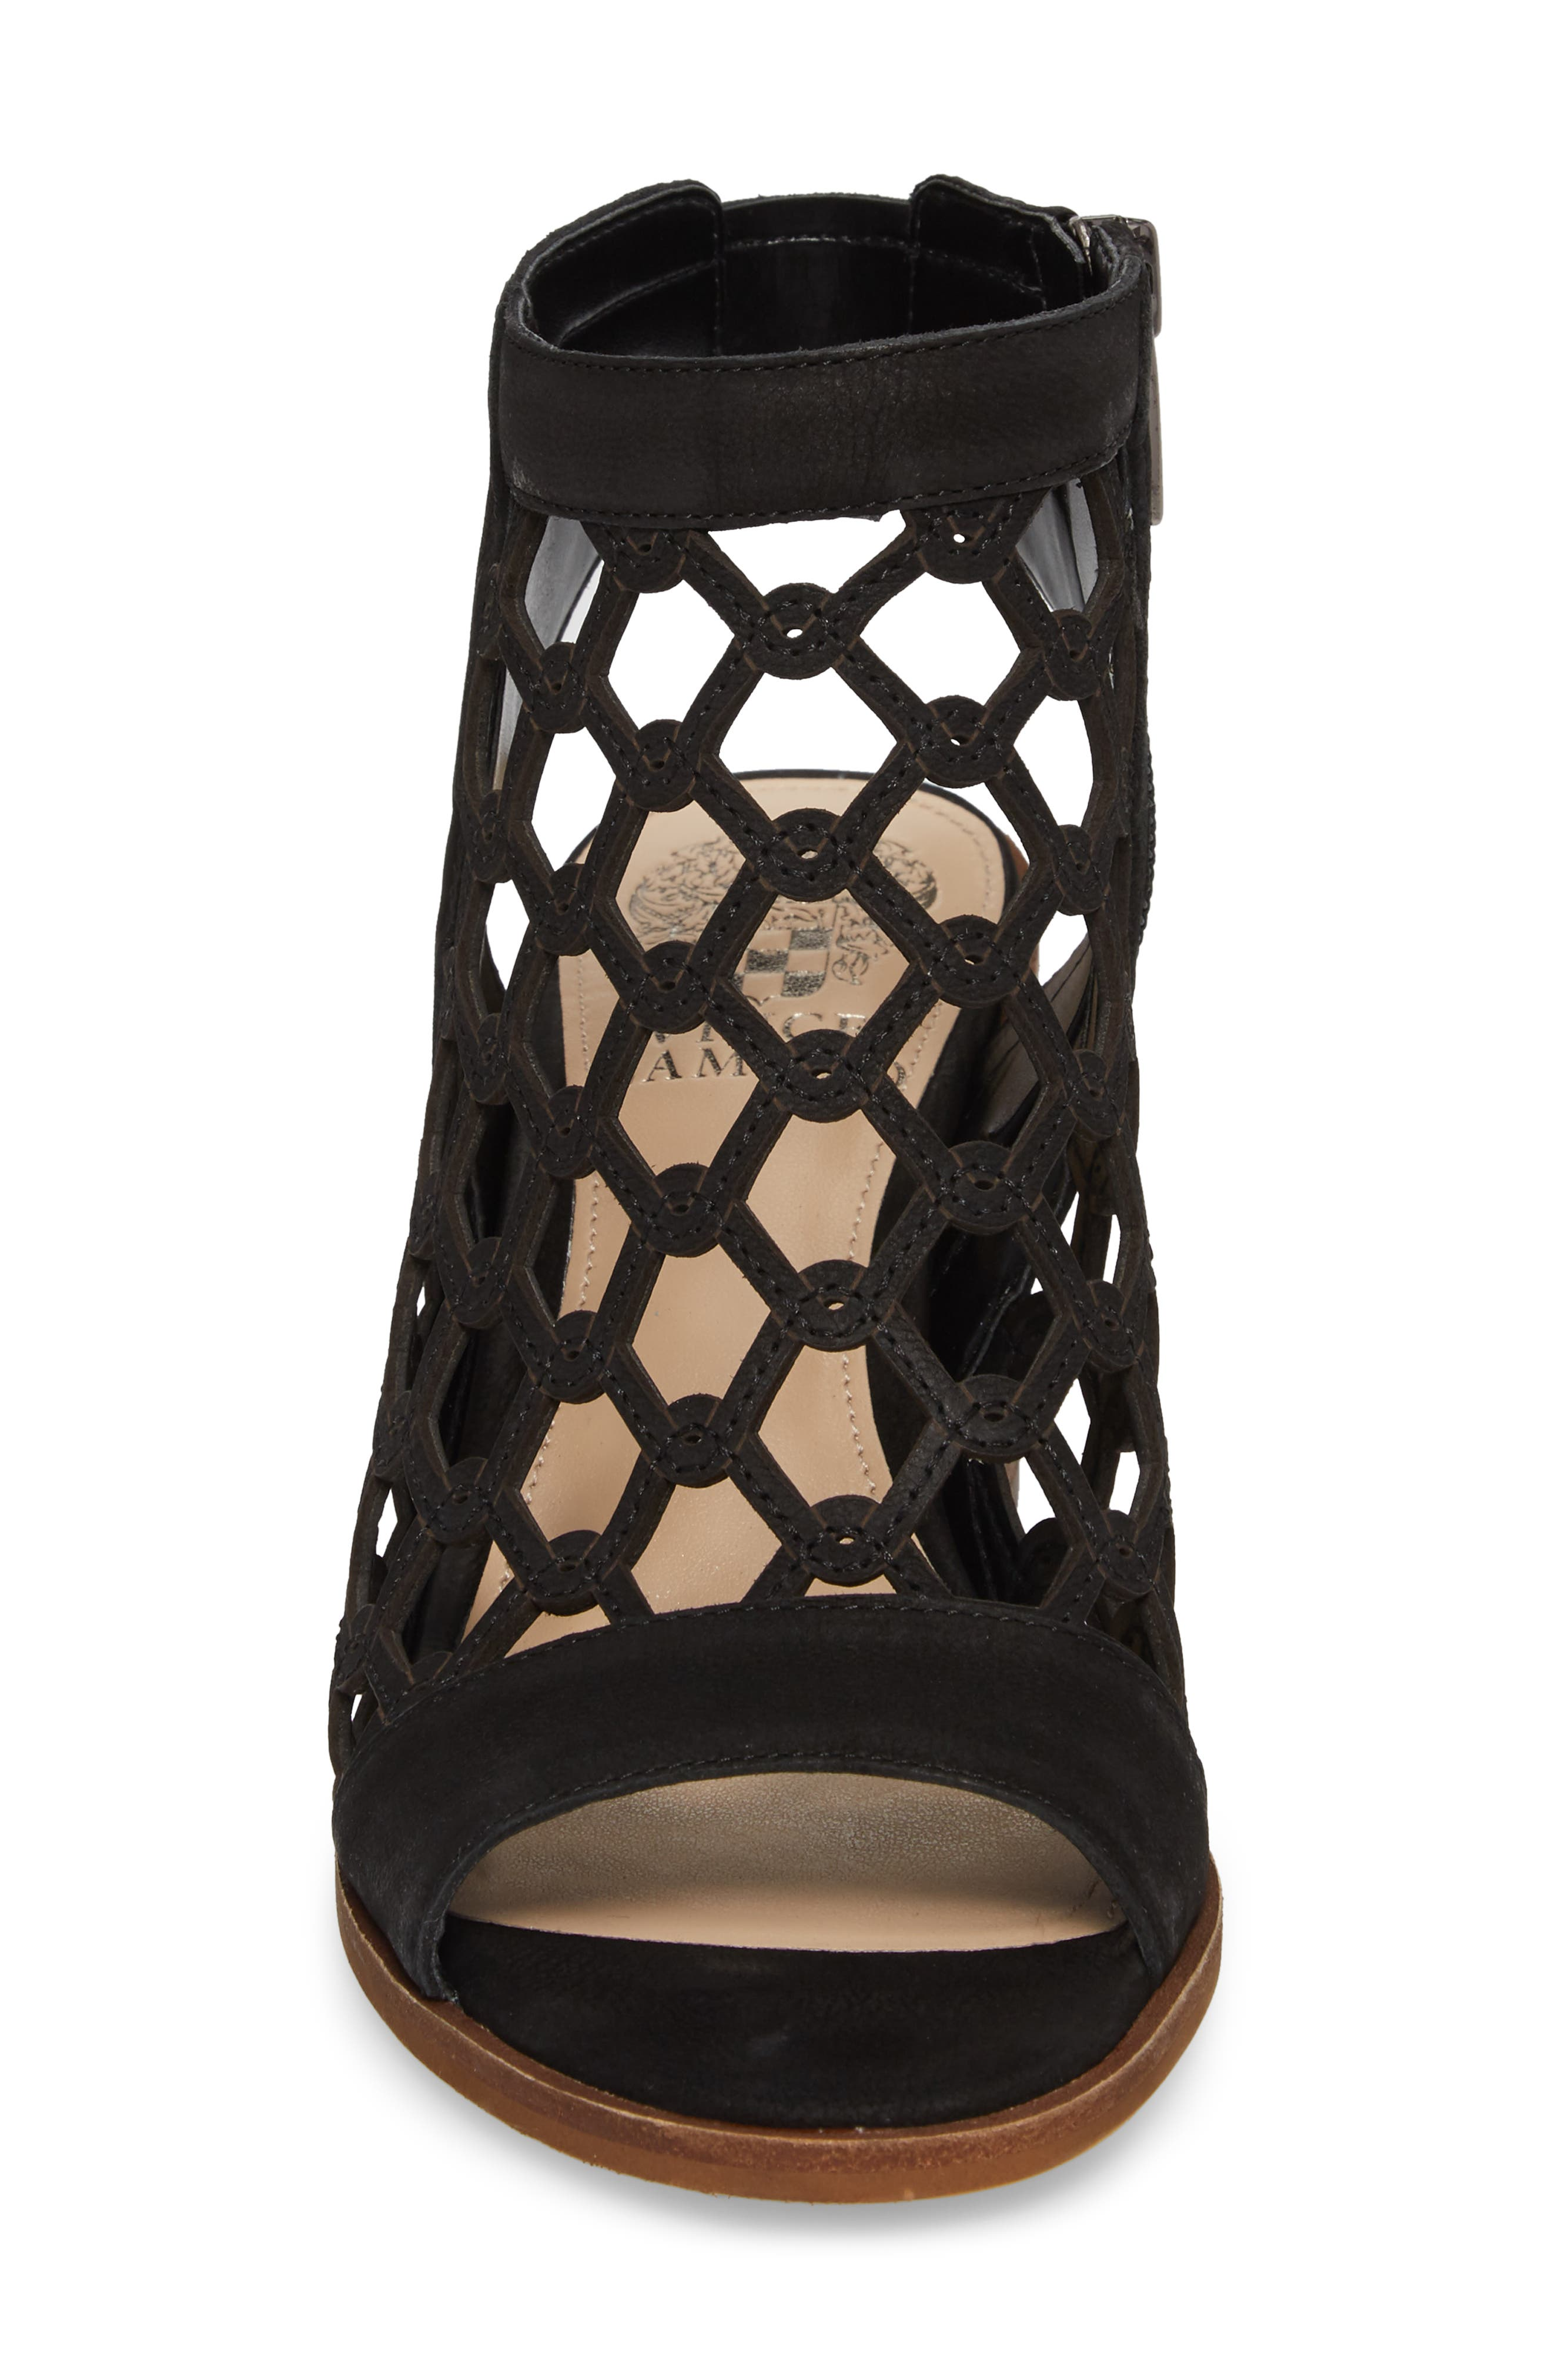 VINCE CAMUTO, Lanaira Sandal, Alternate thumbnail 4, color, BLACK LEATHER